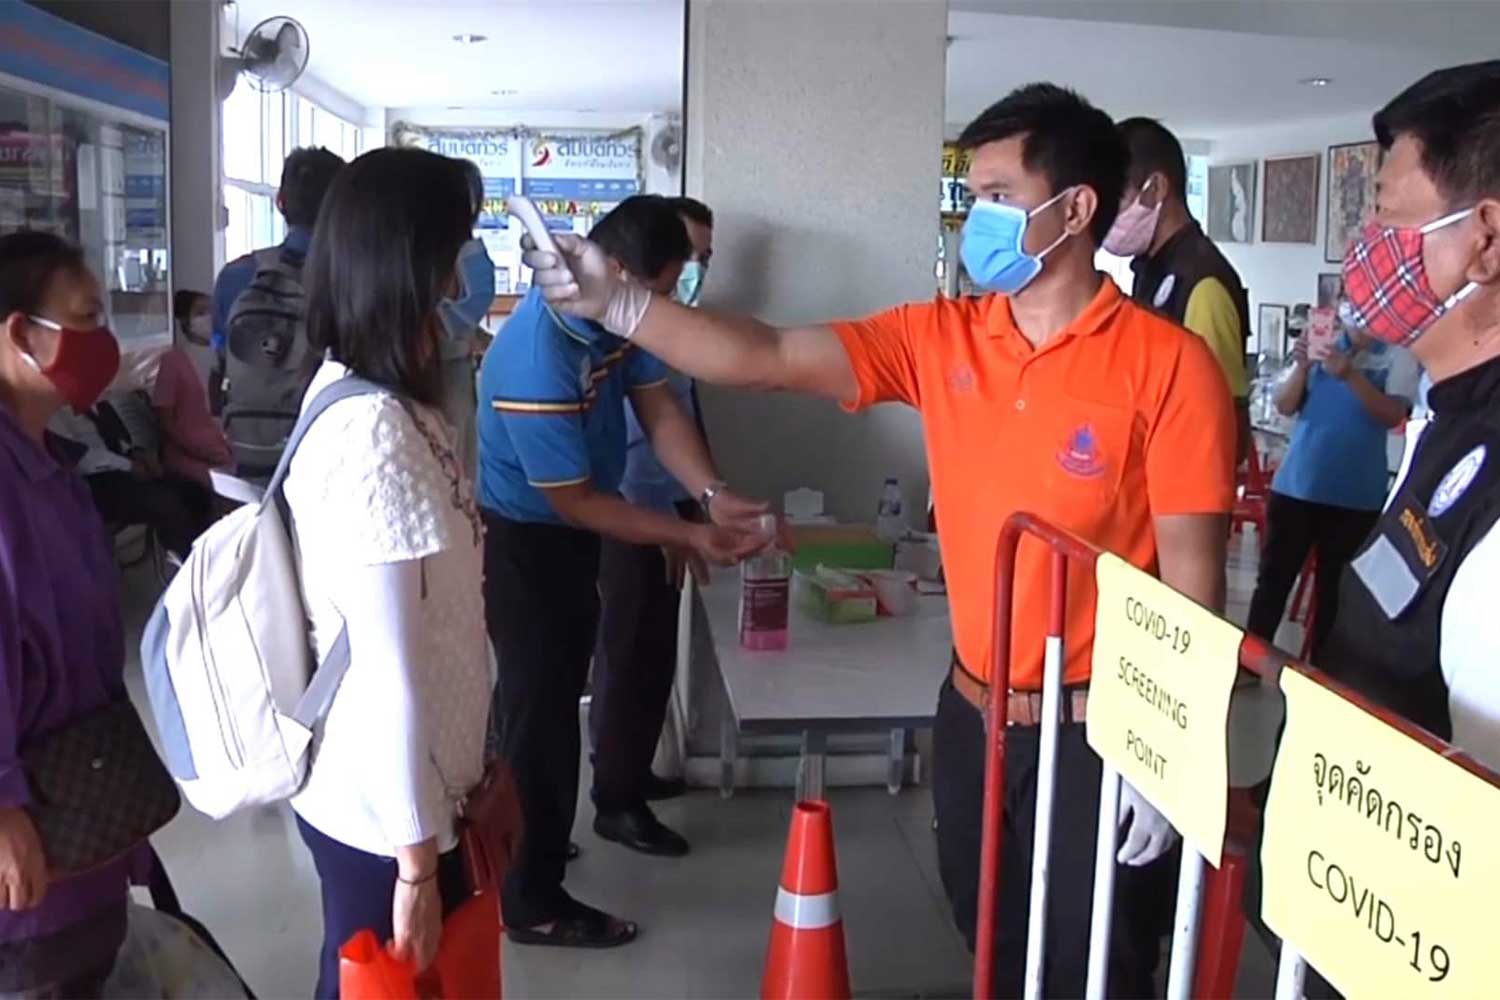 Passengers are checked by health staff at a bus terminal in Khon Kaen on Friday. (Photo by Chakkrapan Natanri)